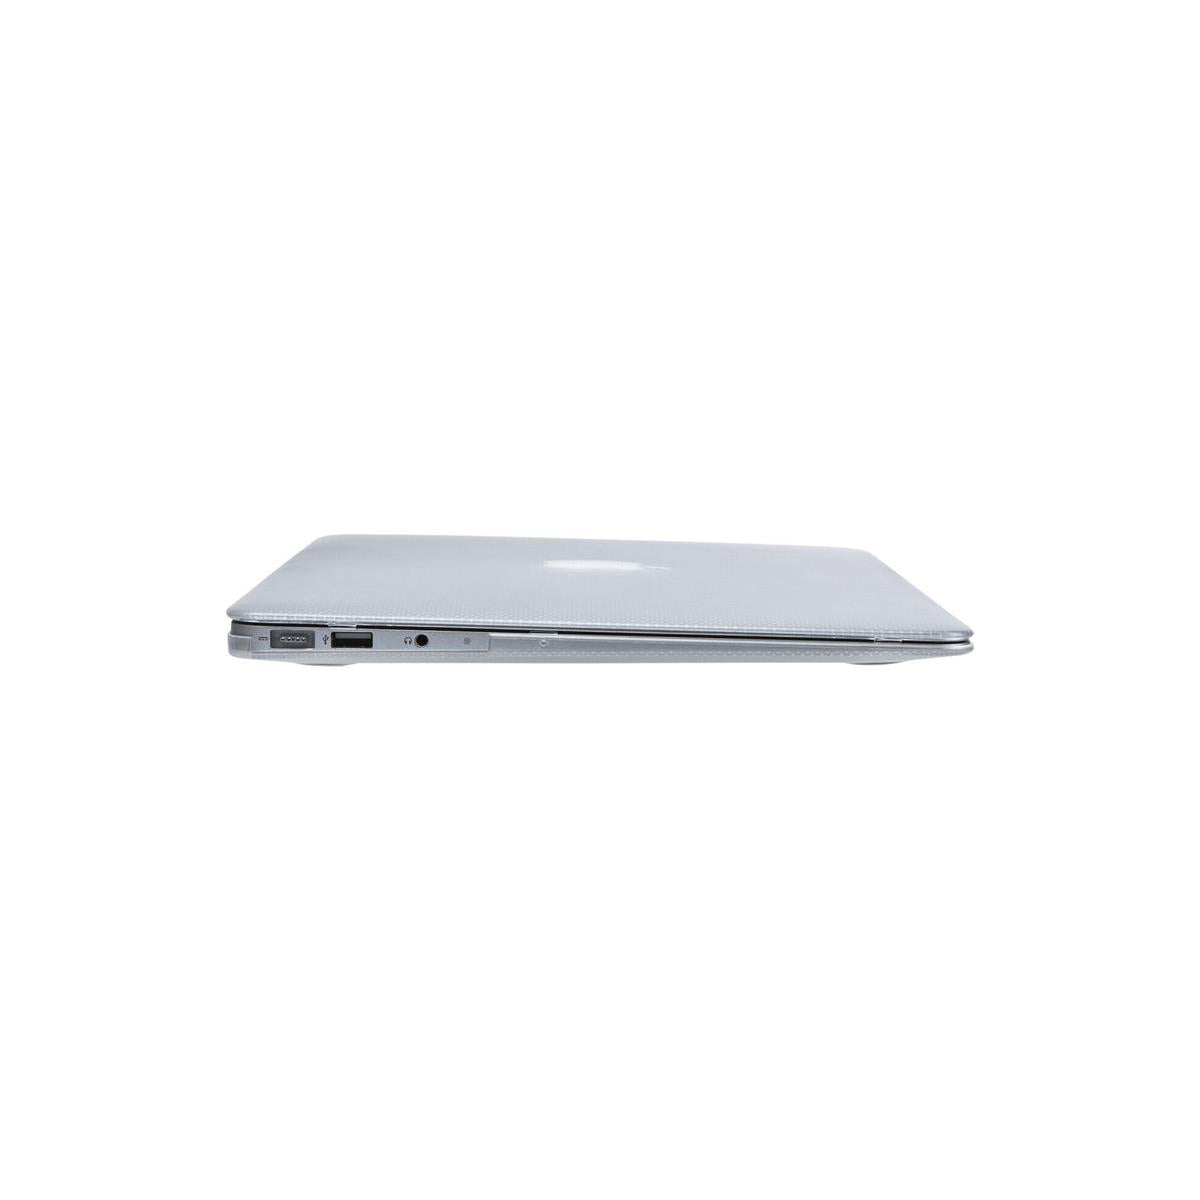 "Incase 11"" Hardshell Case for MacBook Air (Clear)"